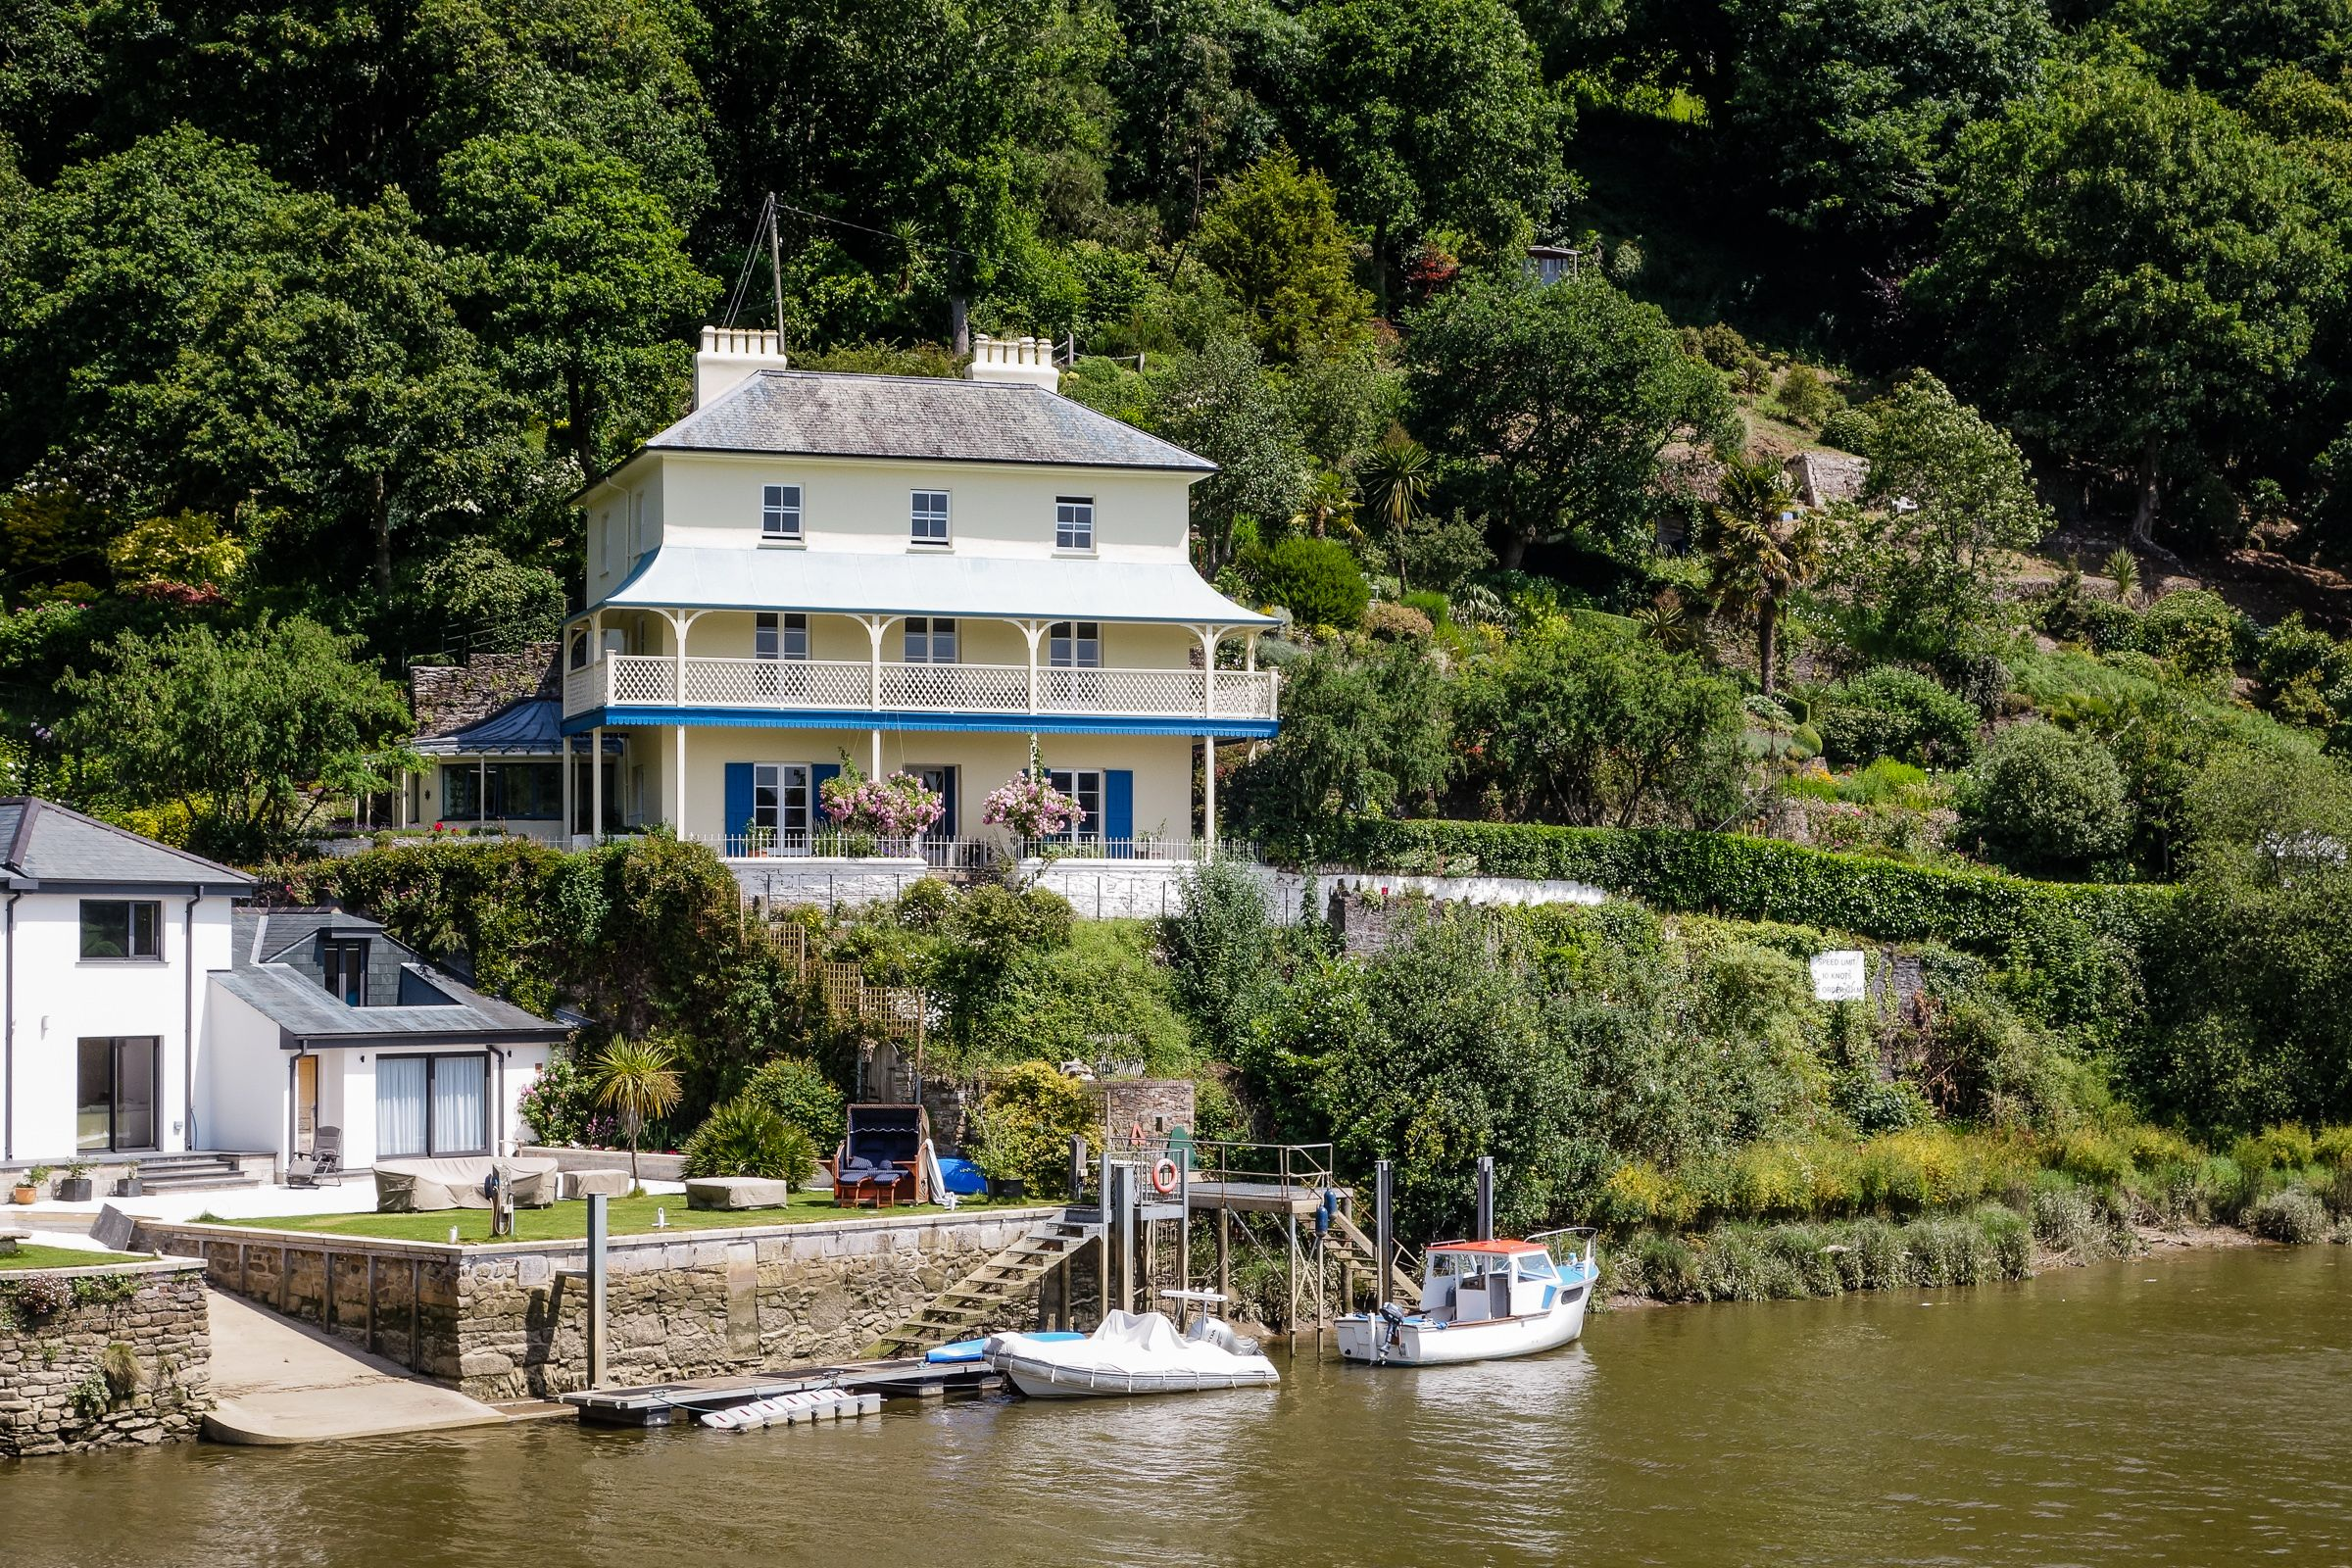 Stunning Victorian villa in picturesque riverside setting is for sale in Cornwall